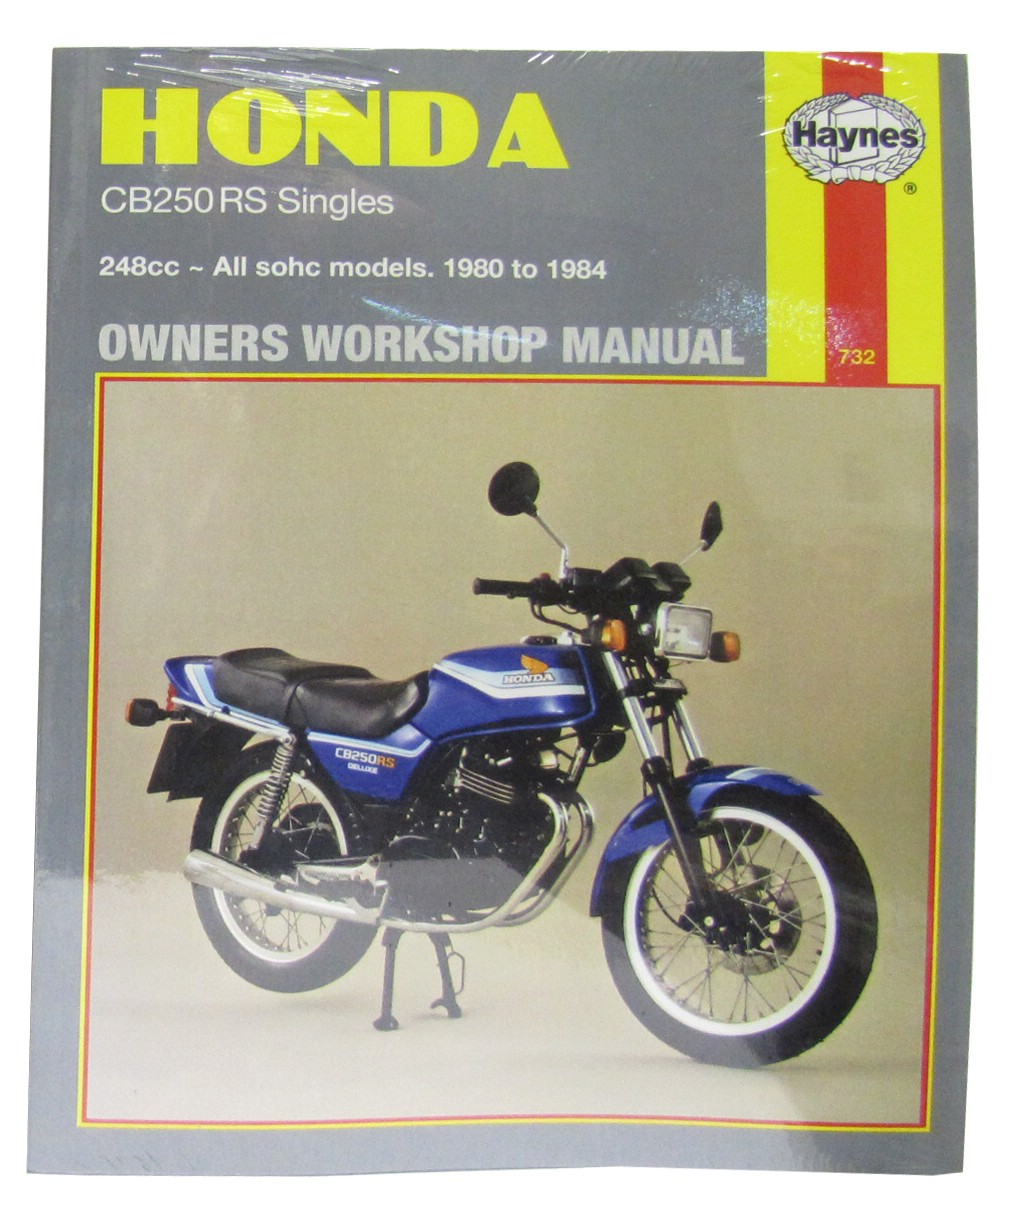 fits honda cb 250 rs europe 1980 manuals haynes each ebay rh ebay co uk honda cb 250 rs service manual Honda CB 150